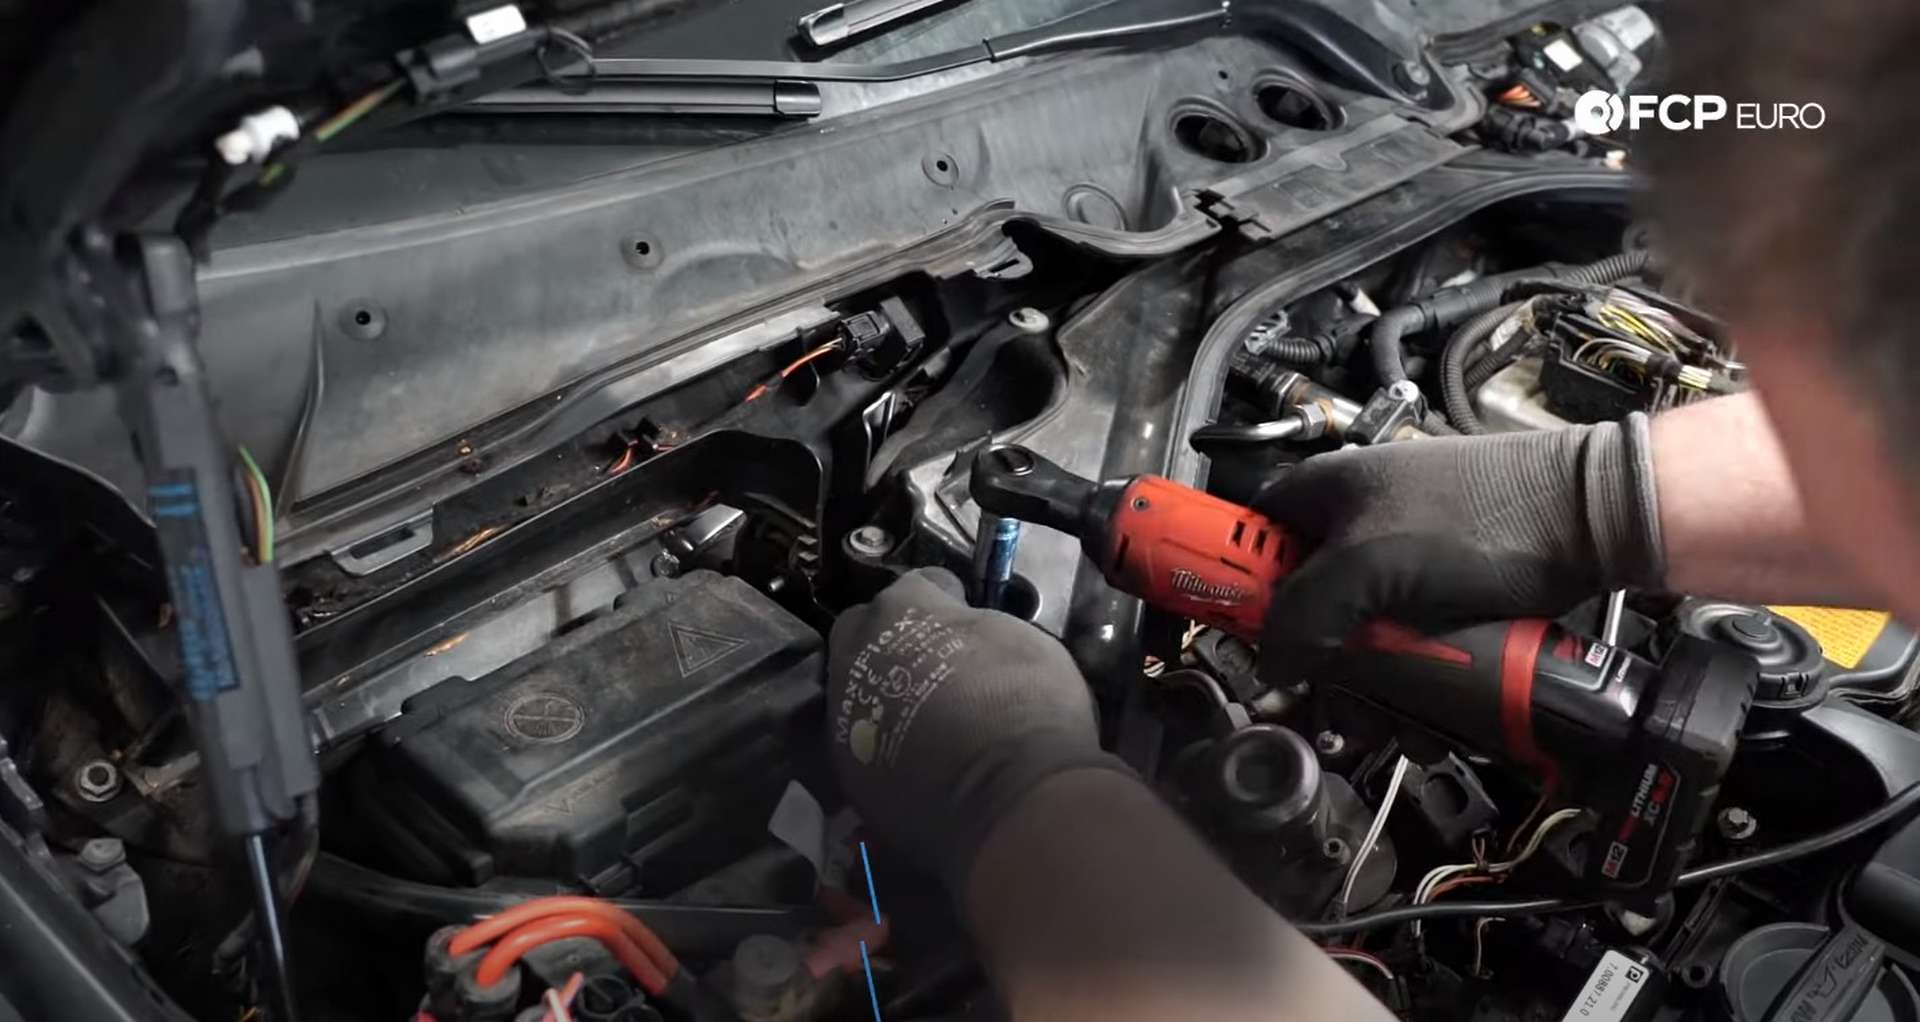 DIY BMW F30 Fuel Injector Replacement removing the rear engine cover